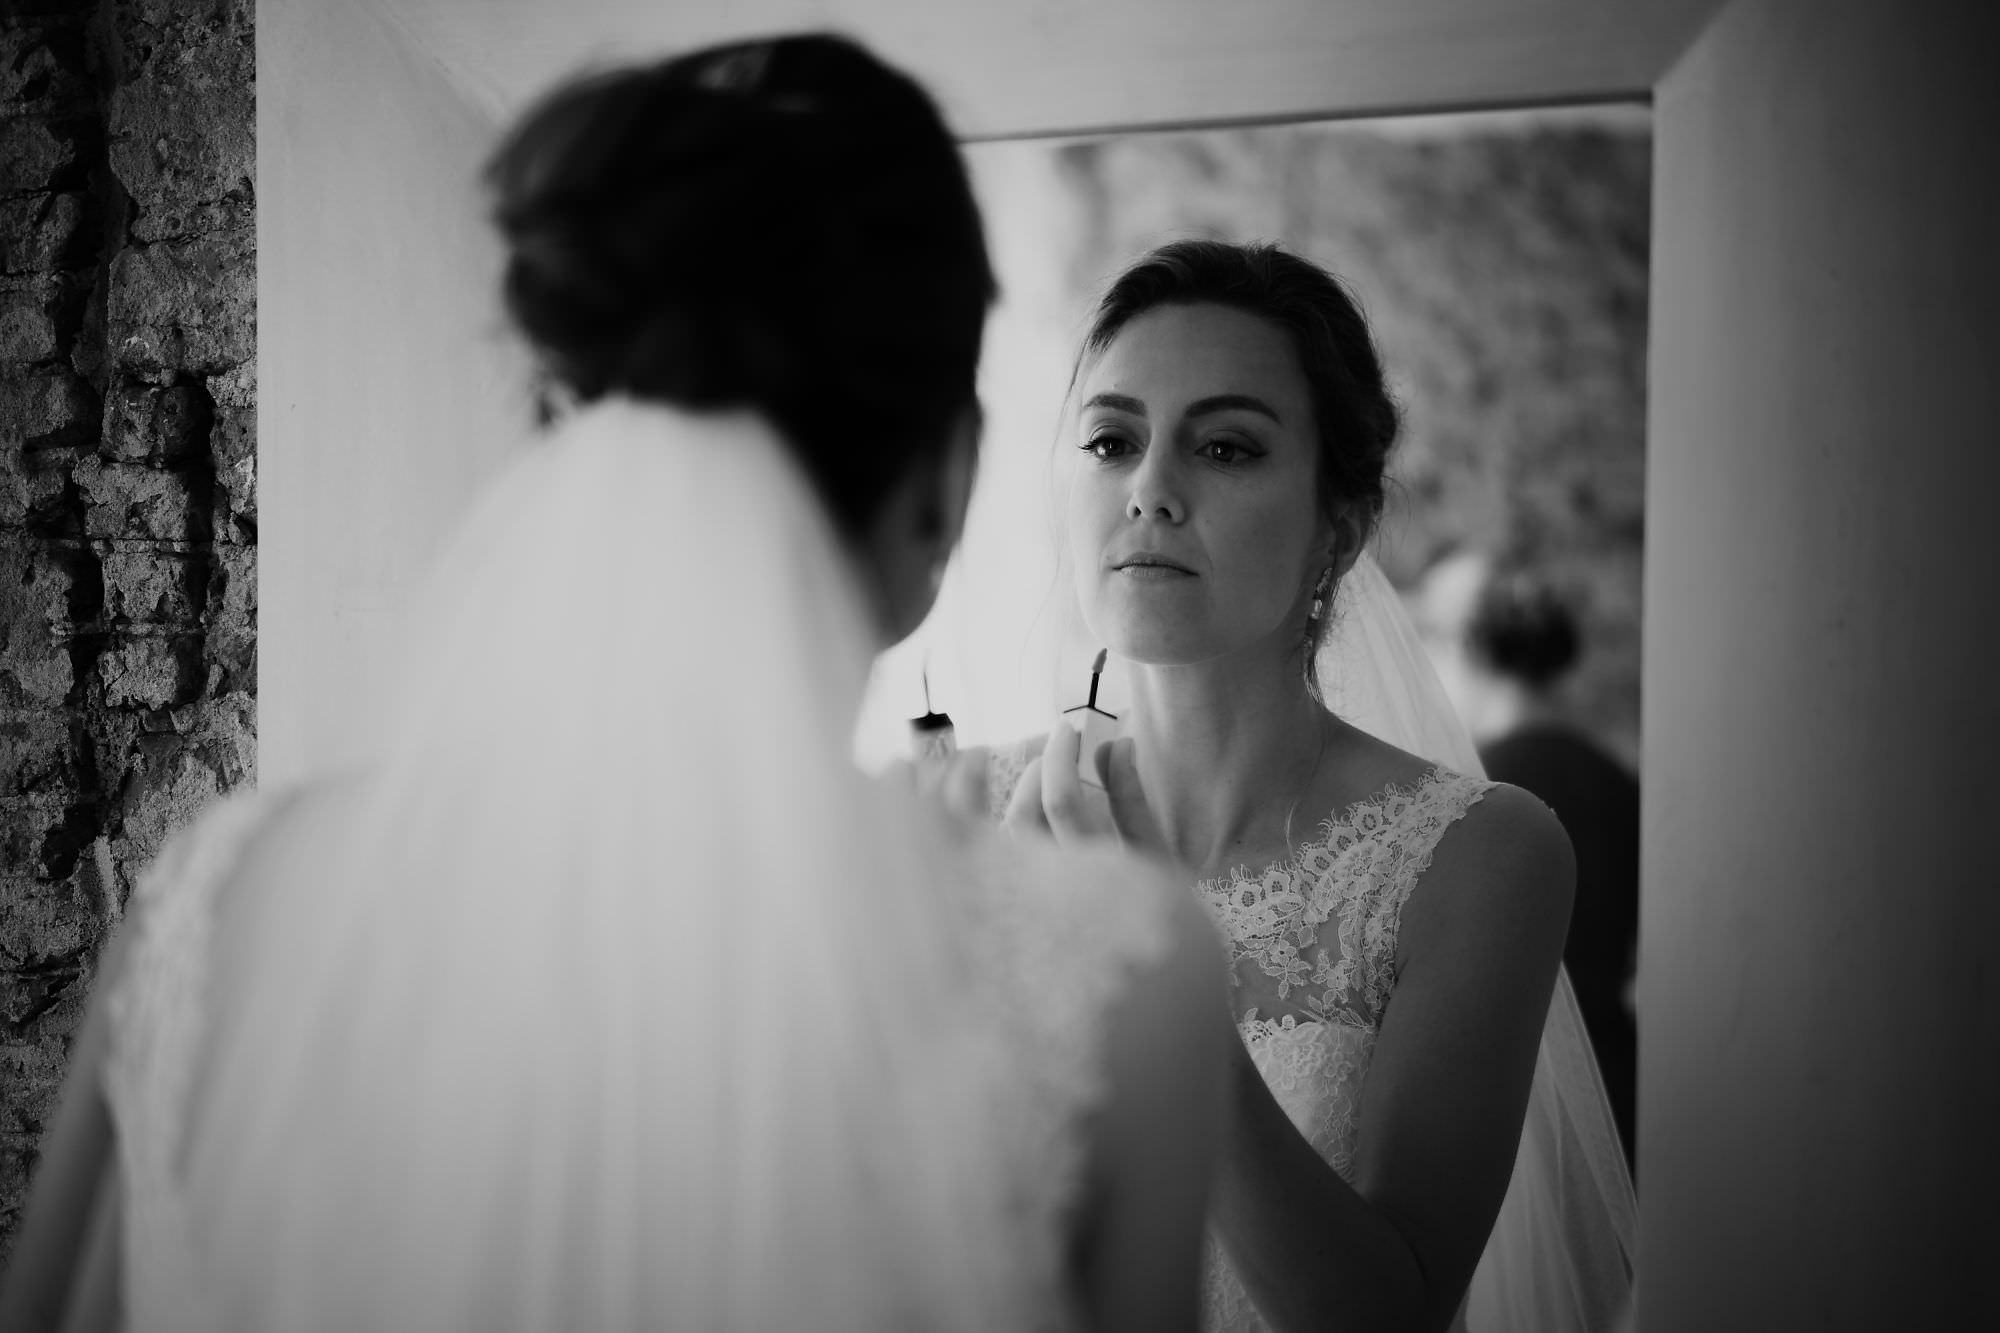 bridal make up amsterdam and utrecht wedding photography